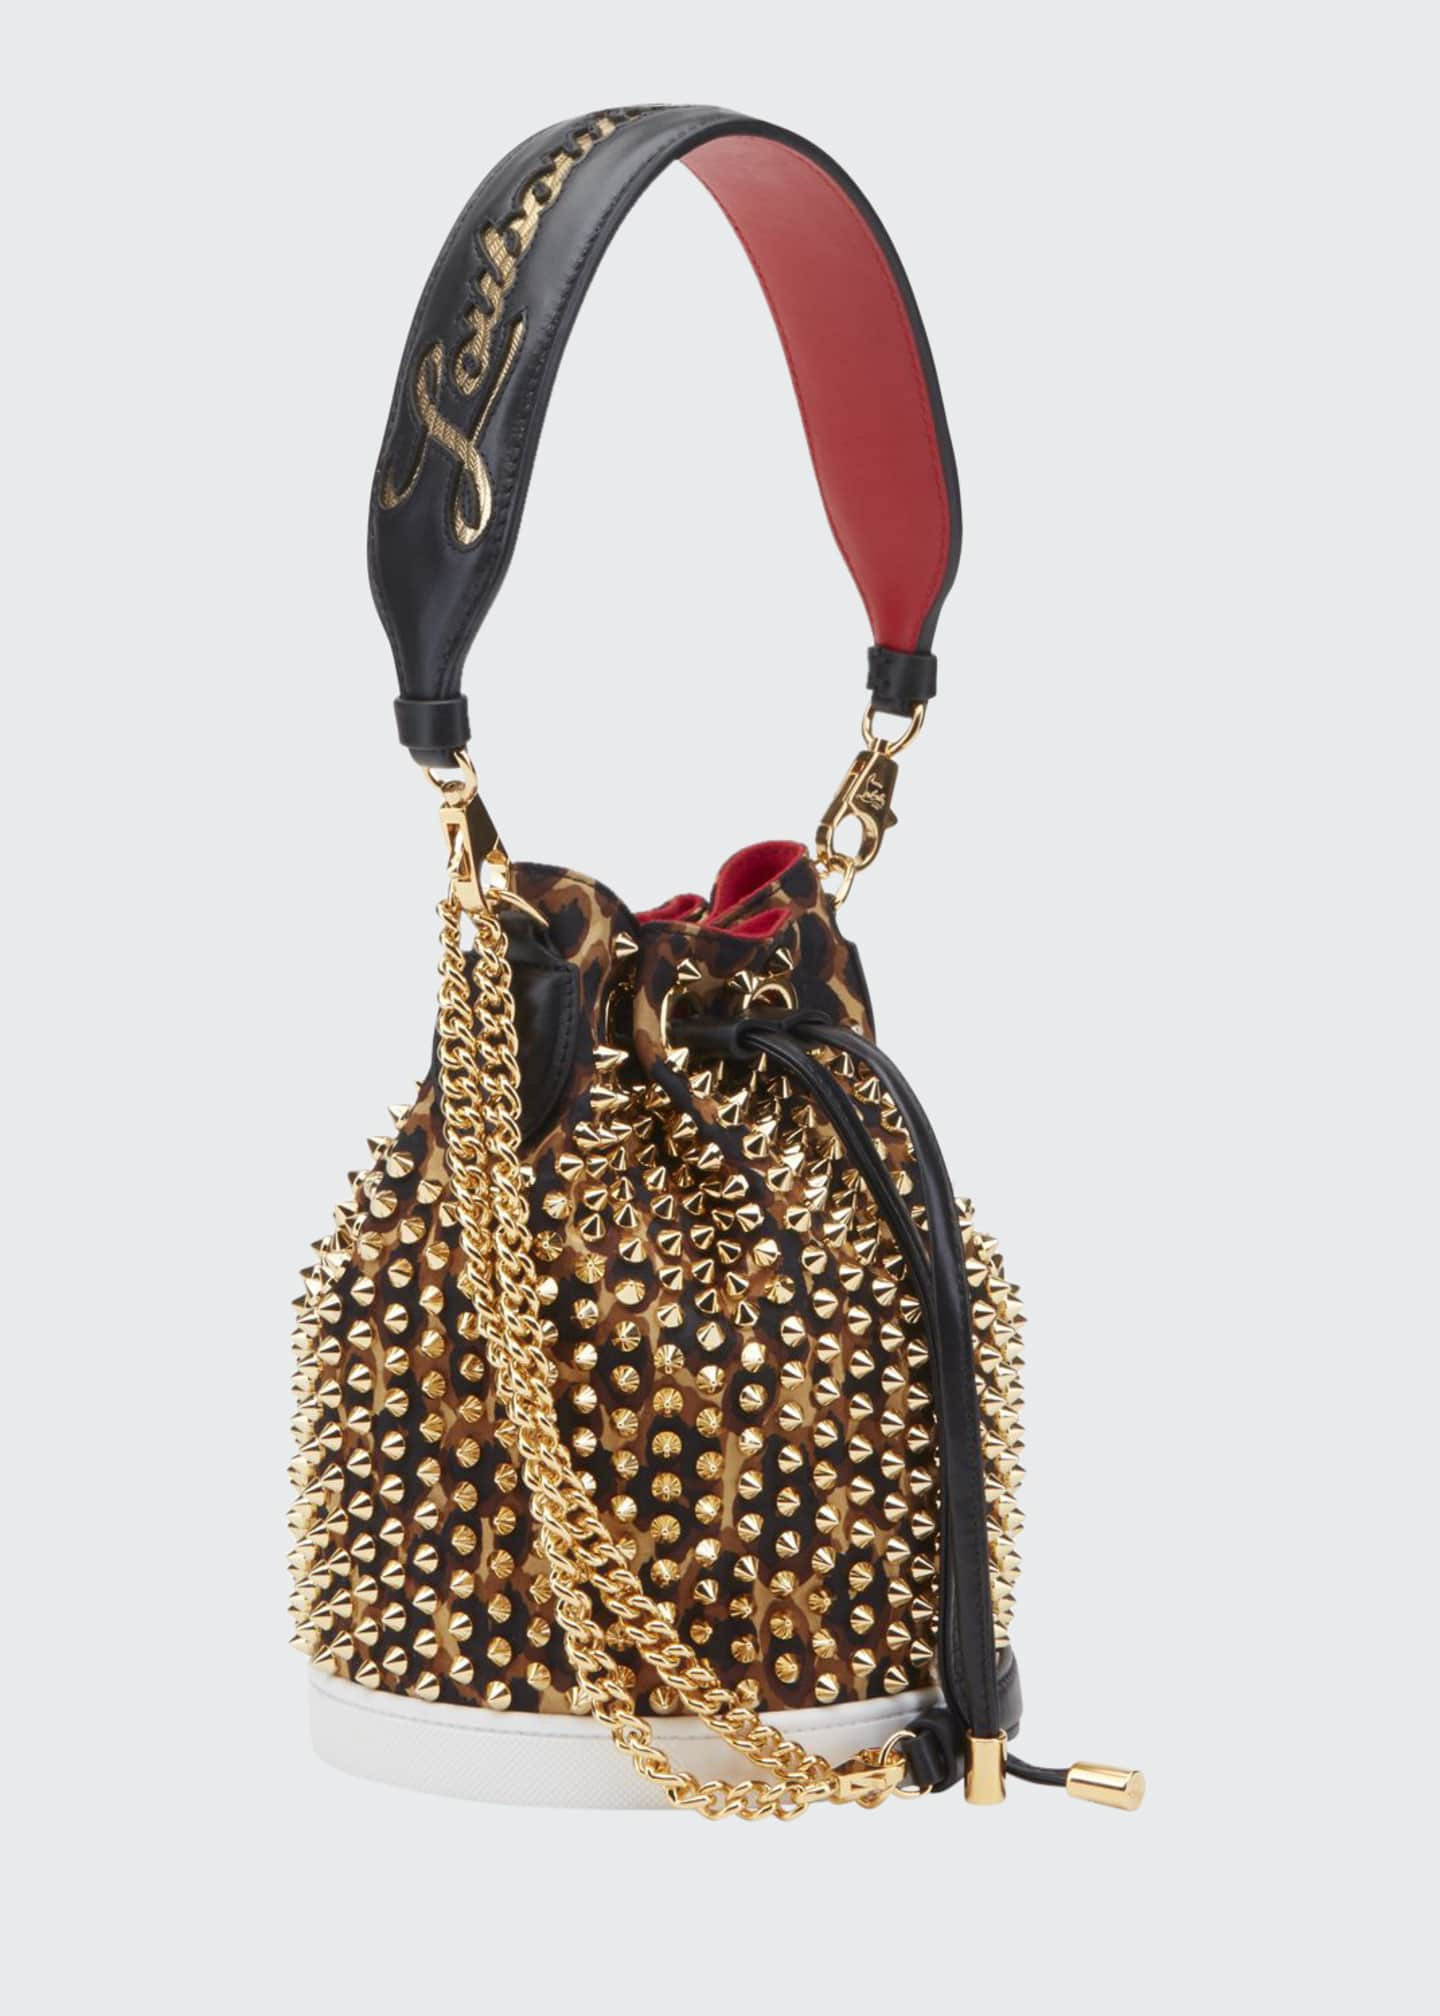 Christian Louboutin Marie Jane Loubirun Bucket Bag